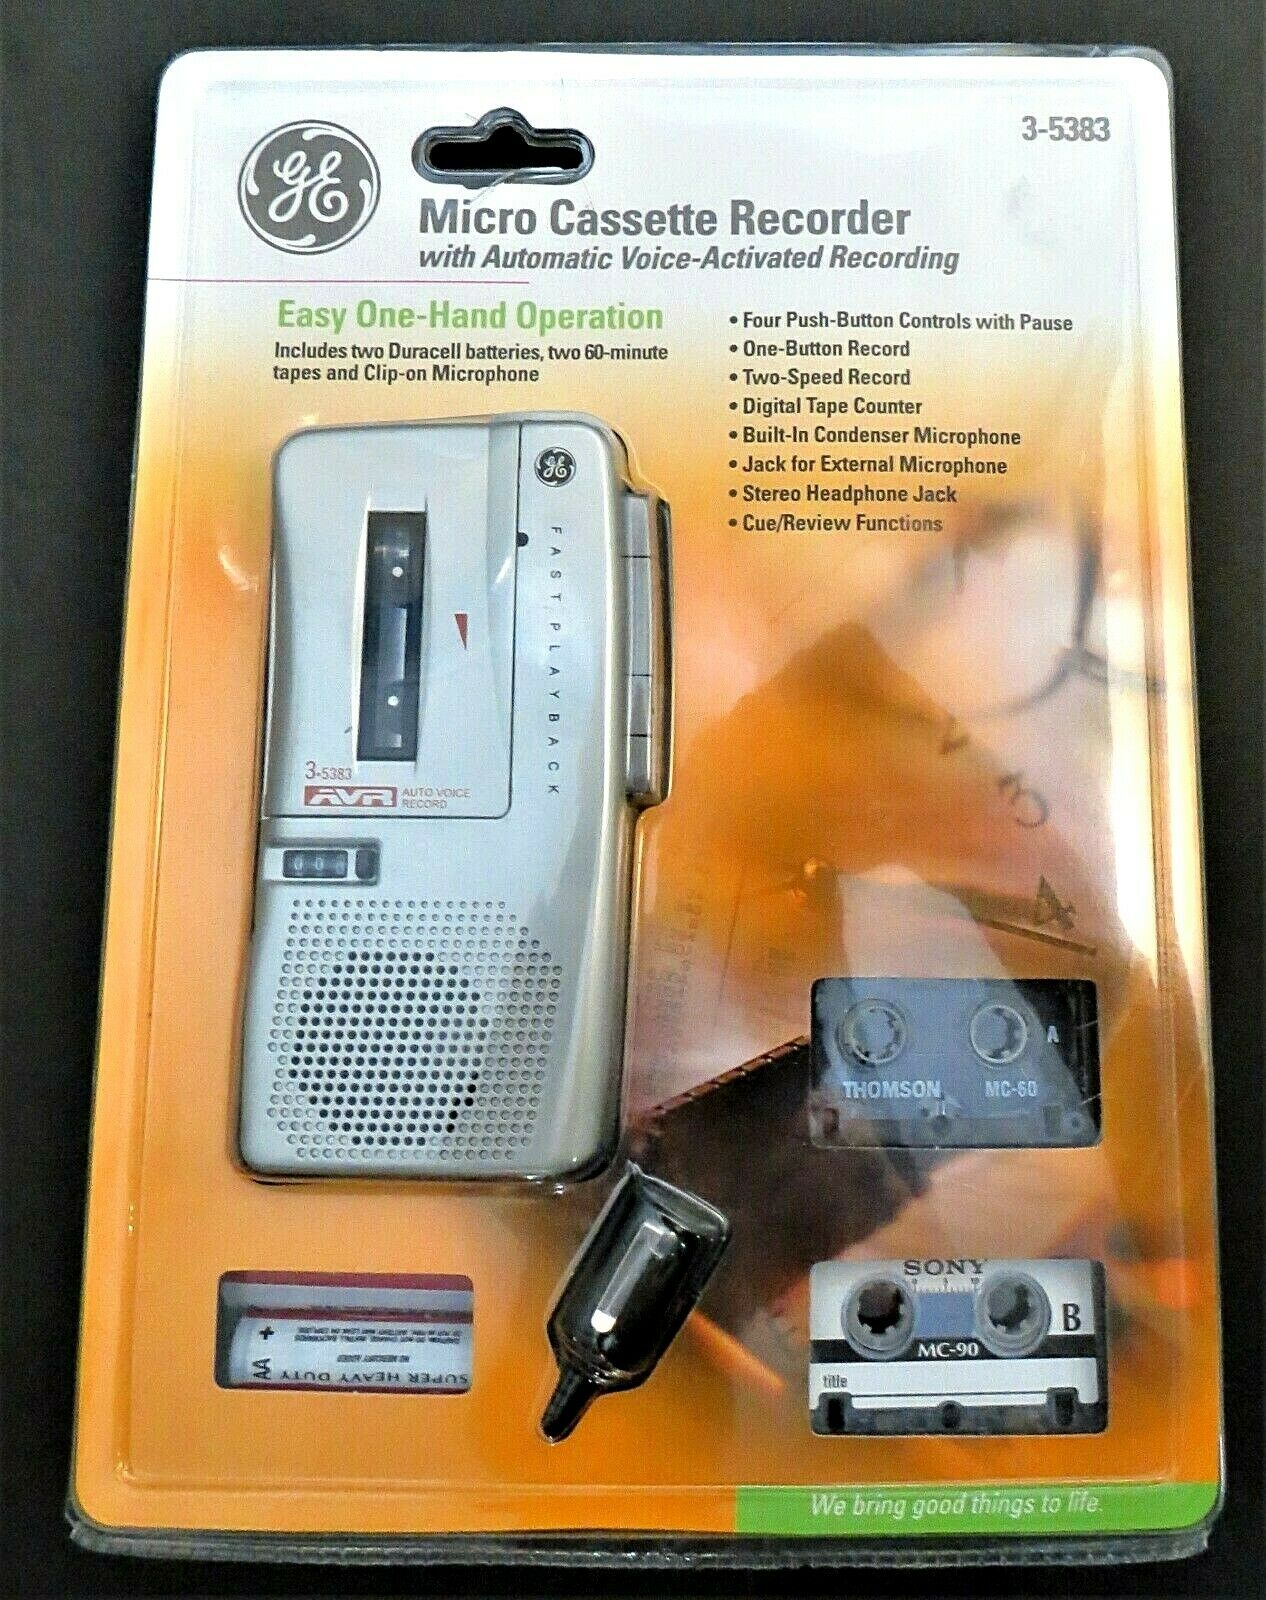 Model 3-5380s GE Automatic Voice Activated Microcassette Recorder